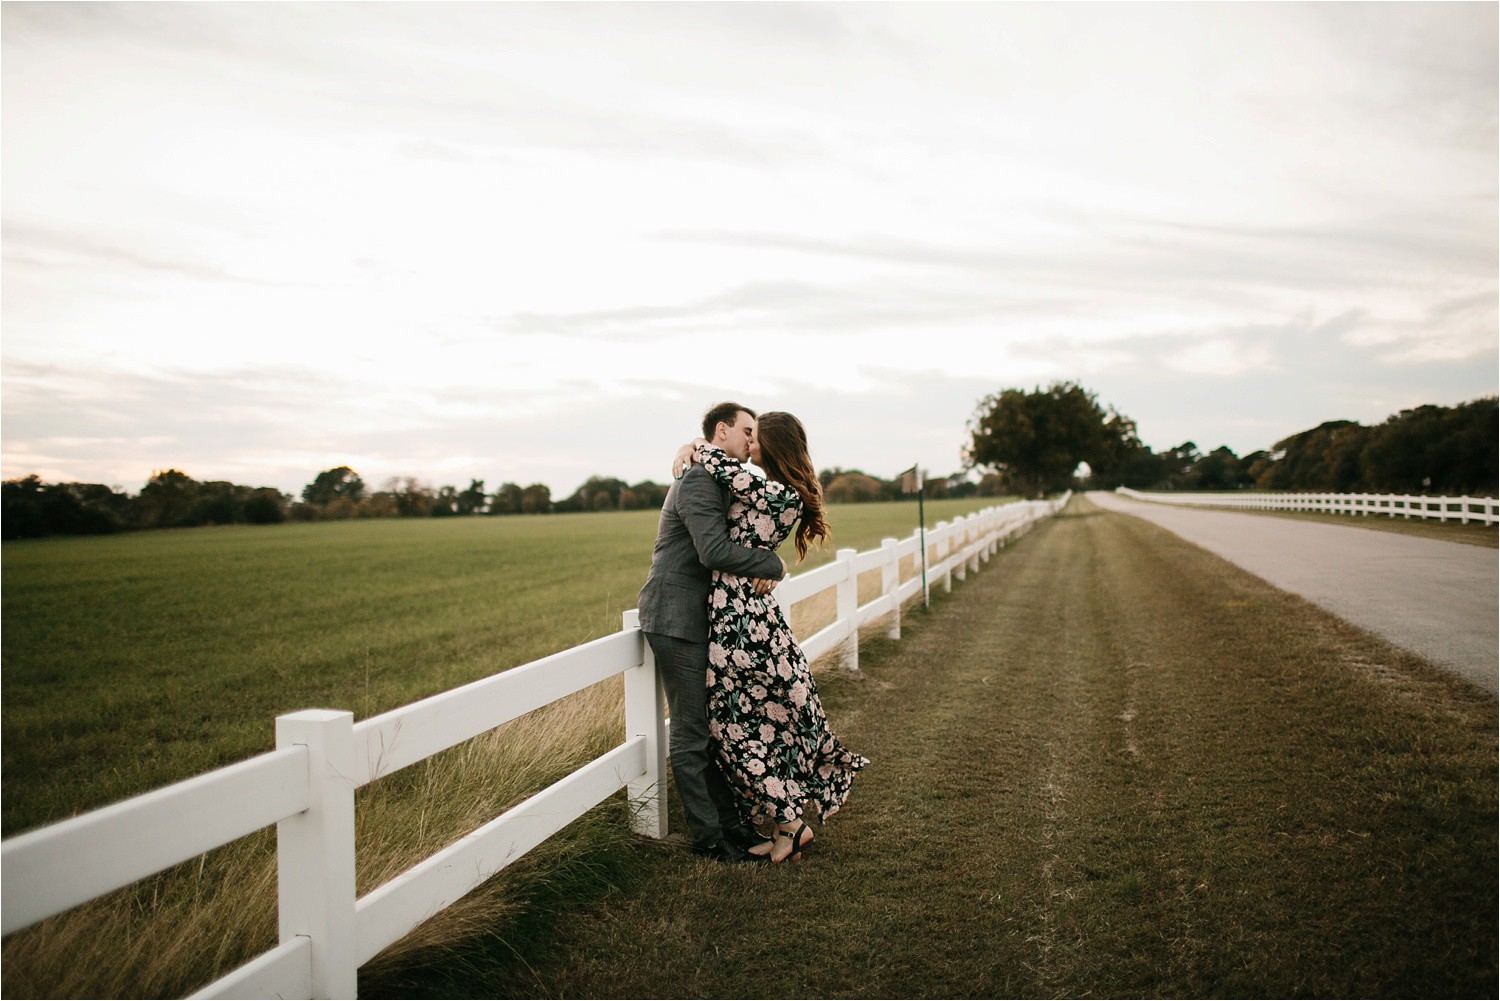 Aleta + Sabian __ a windy lakeside nature engagement session by North Texas Wedding Photographer Rachel Meagan Photography _52